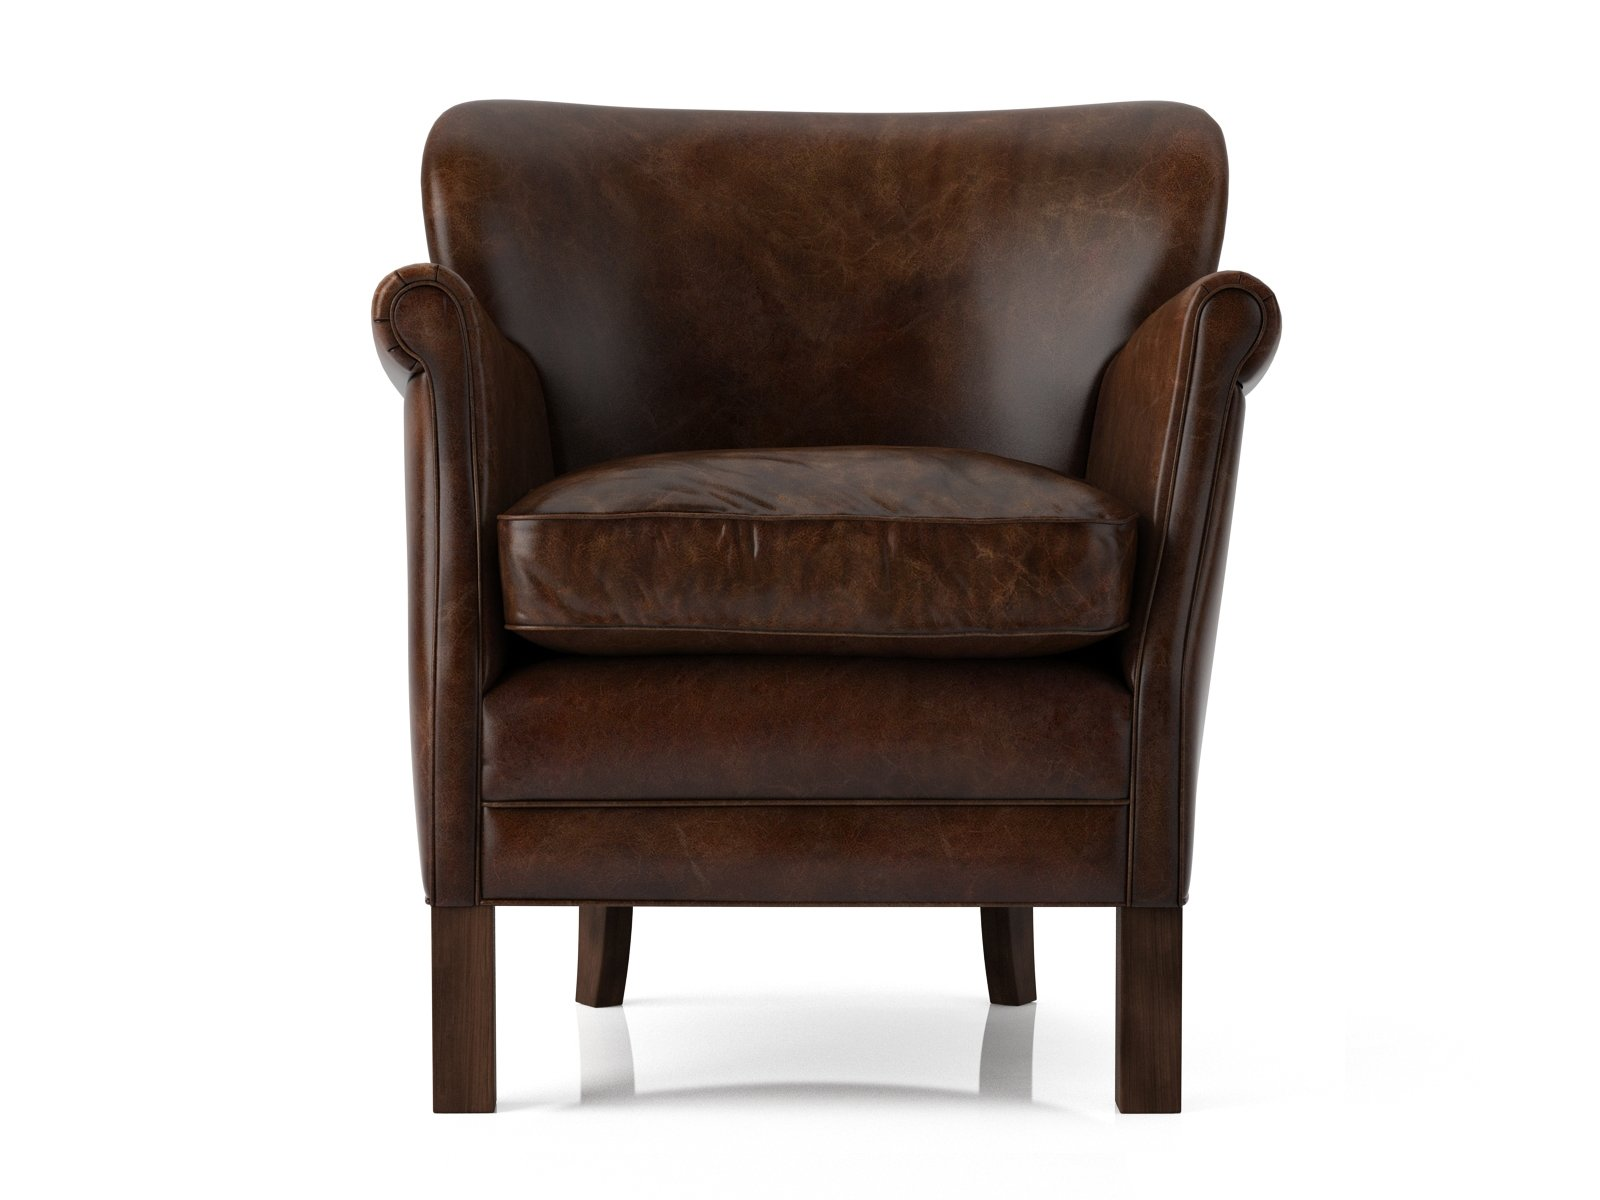 Professor's Leather Chair 3d model | Restoration Hardware